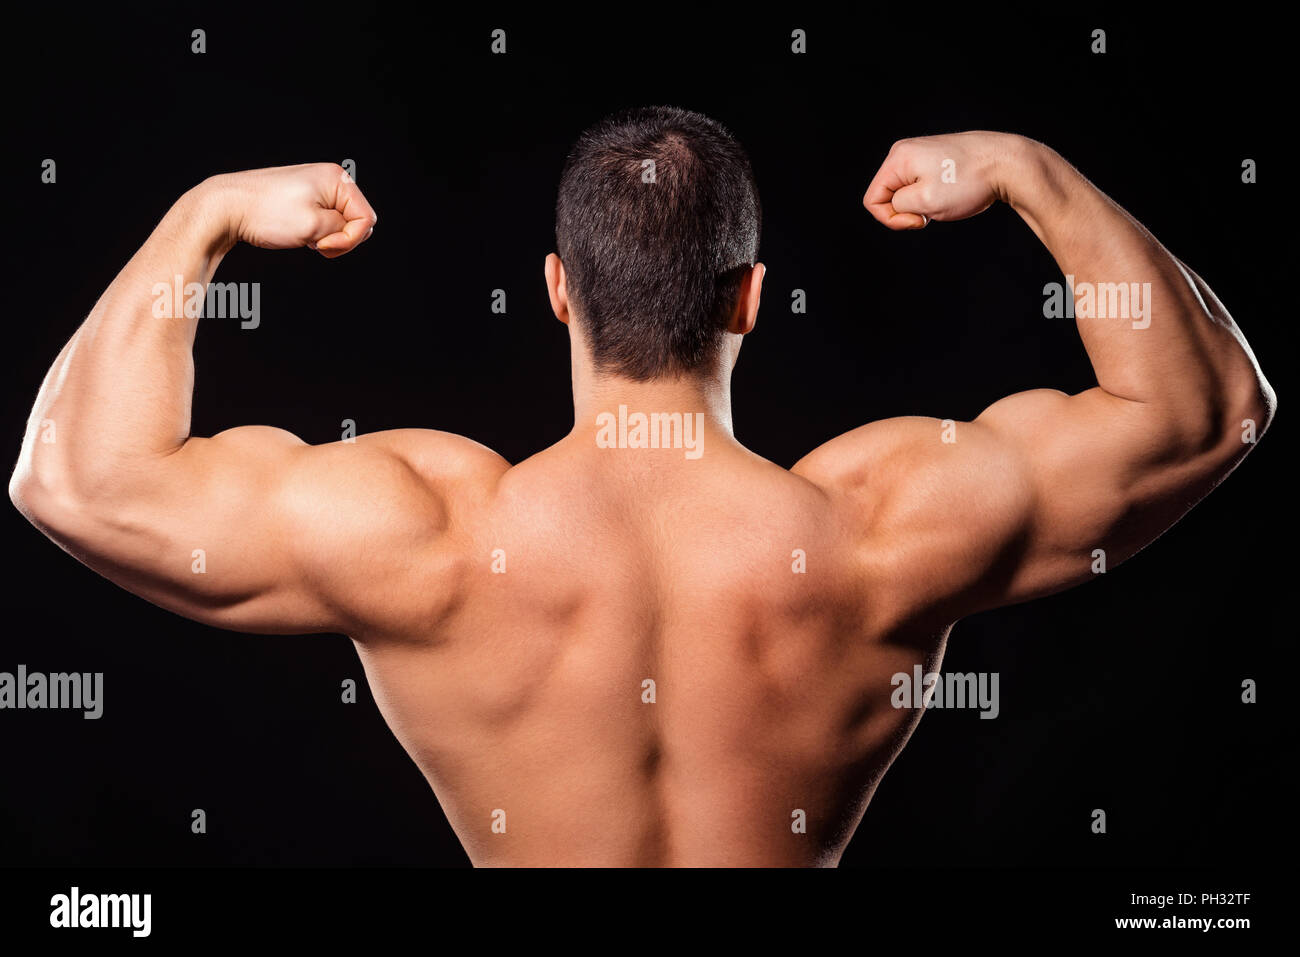 Men's rear double biceps pose. Bodybuilder's rear double biceps pose. Upper back and arms. So close to winning. Stock Photo